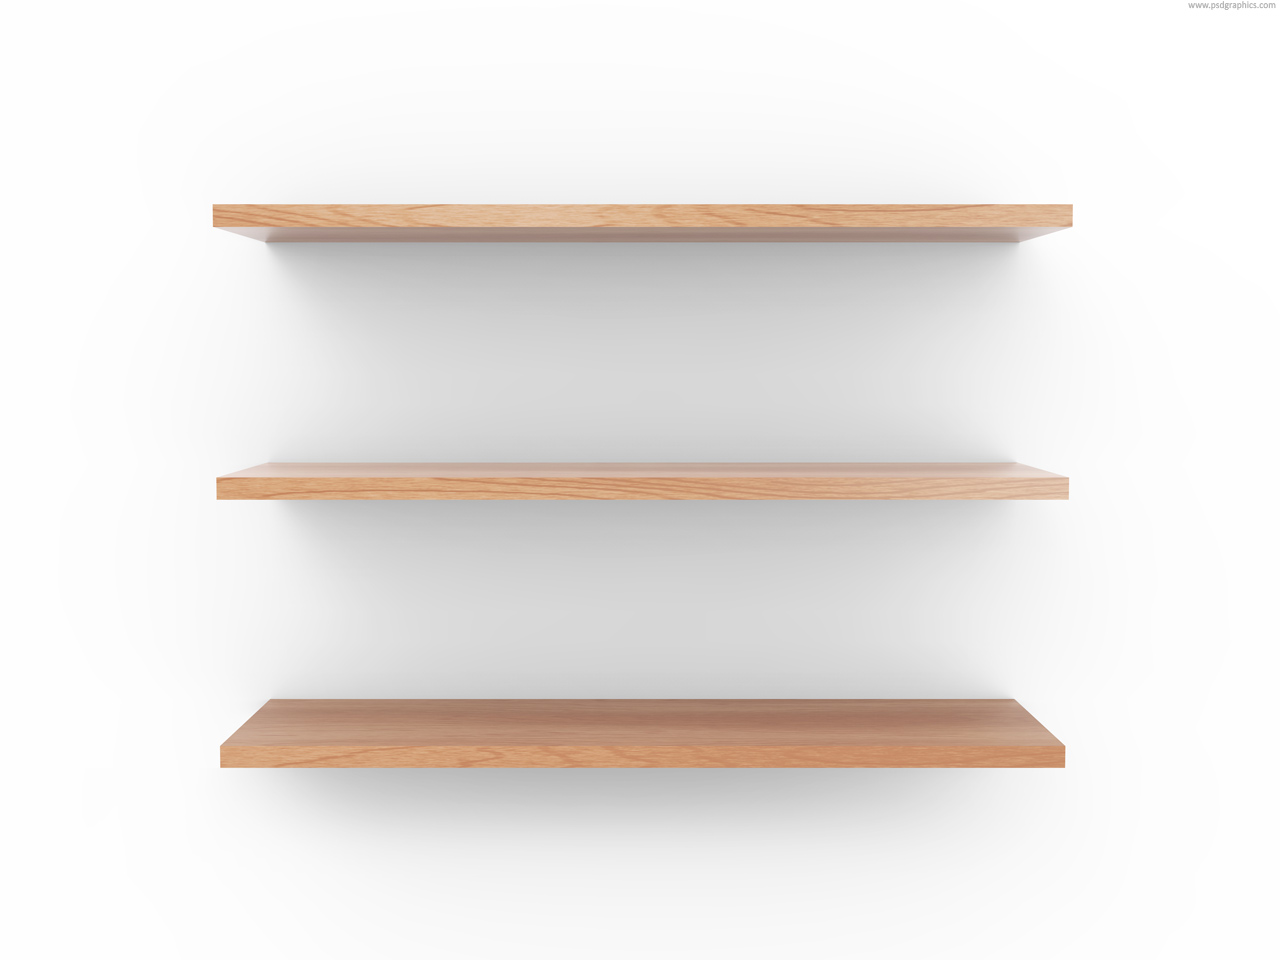 Amazing photo of Medium size preview (1280x960px): Wooden shelf with #946137 color and 1280x960 pixels